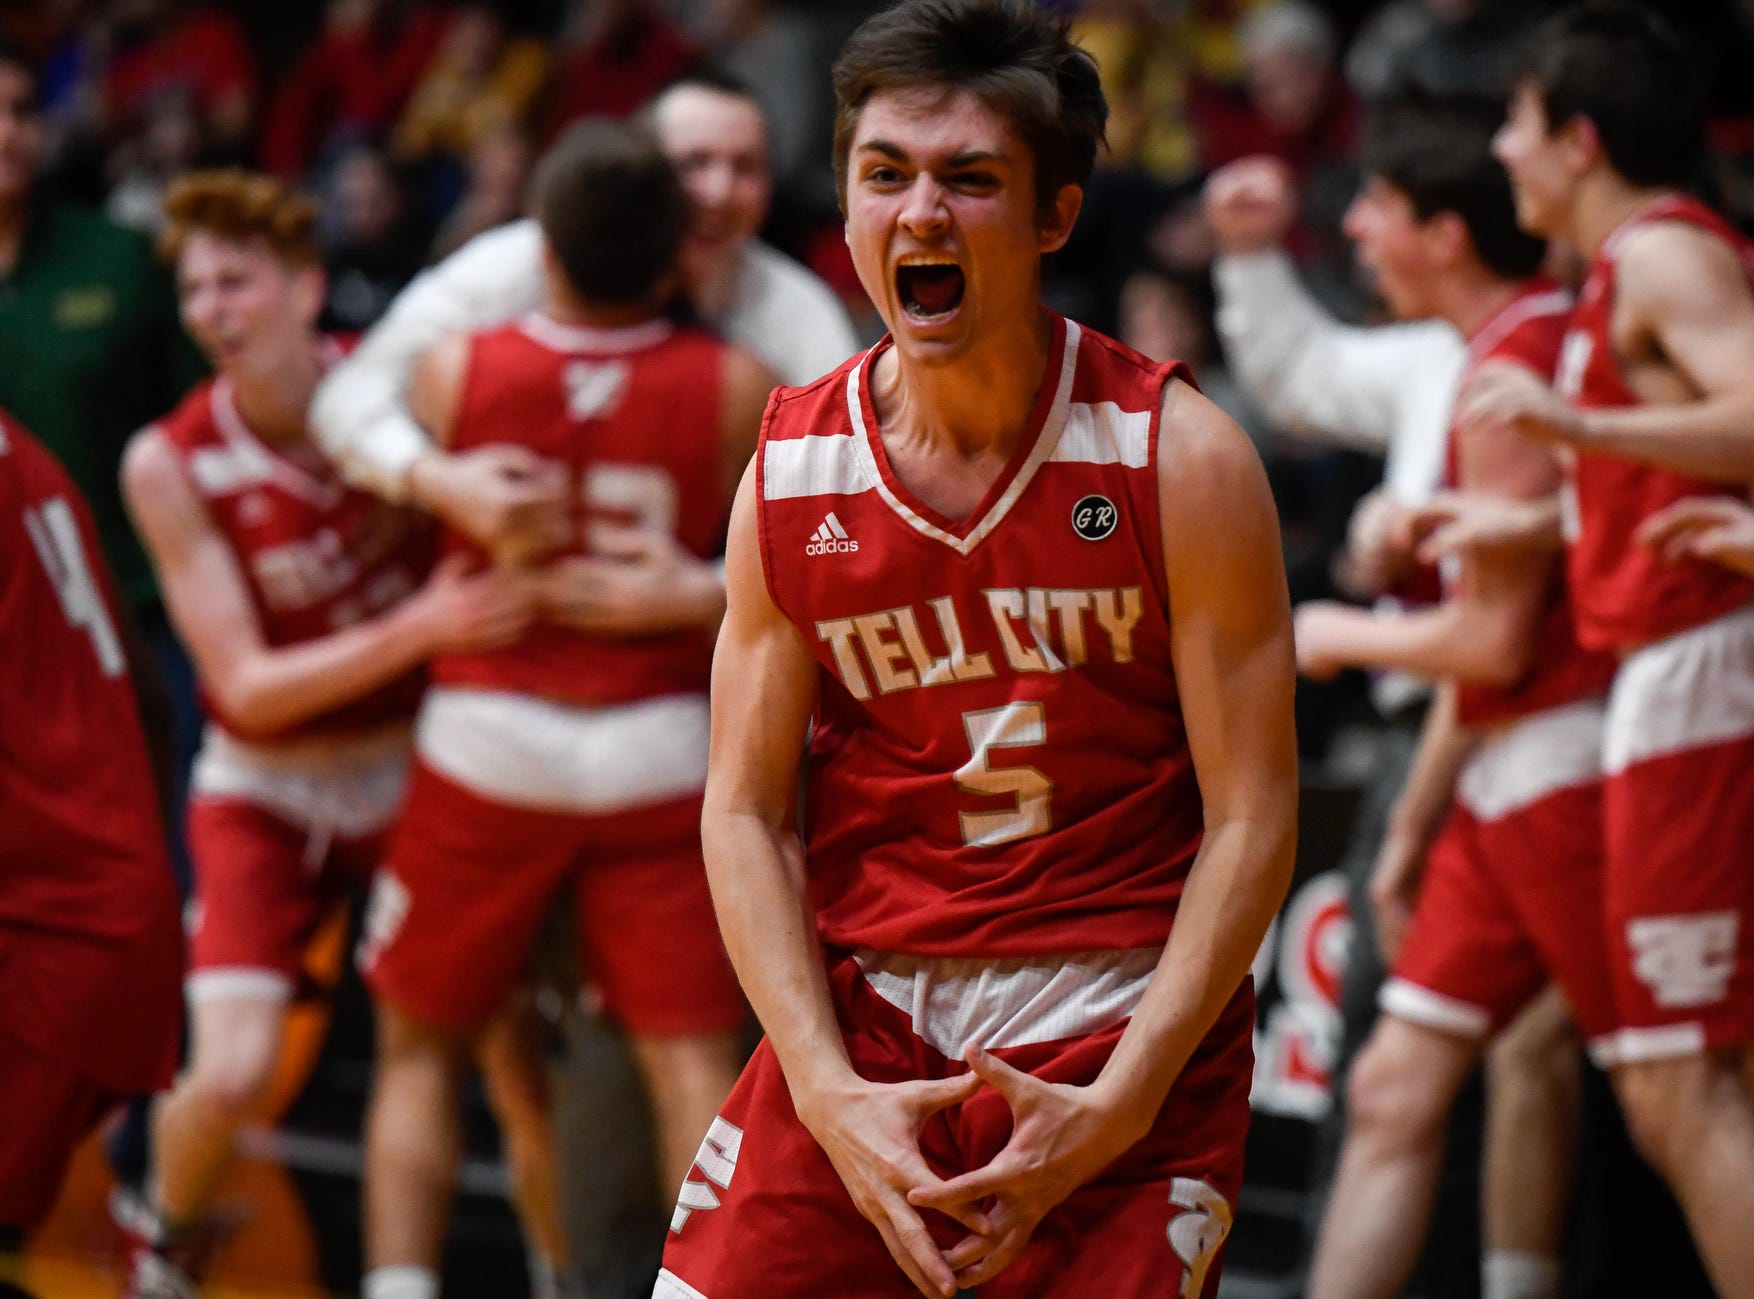 Tell City's Kaden Chestnut (5) reacts to his team's win as the game-clock runs out during the Class 2A Sectional Championship against the Mater Dei Wildcats at Huntingburg's Memorial Gym, Saturday, March 2, 2019.